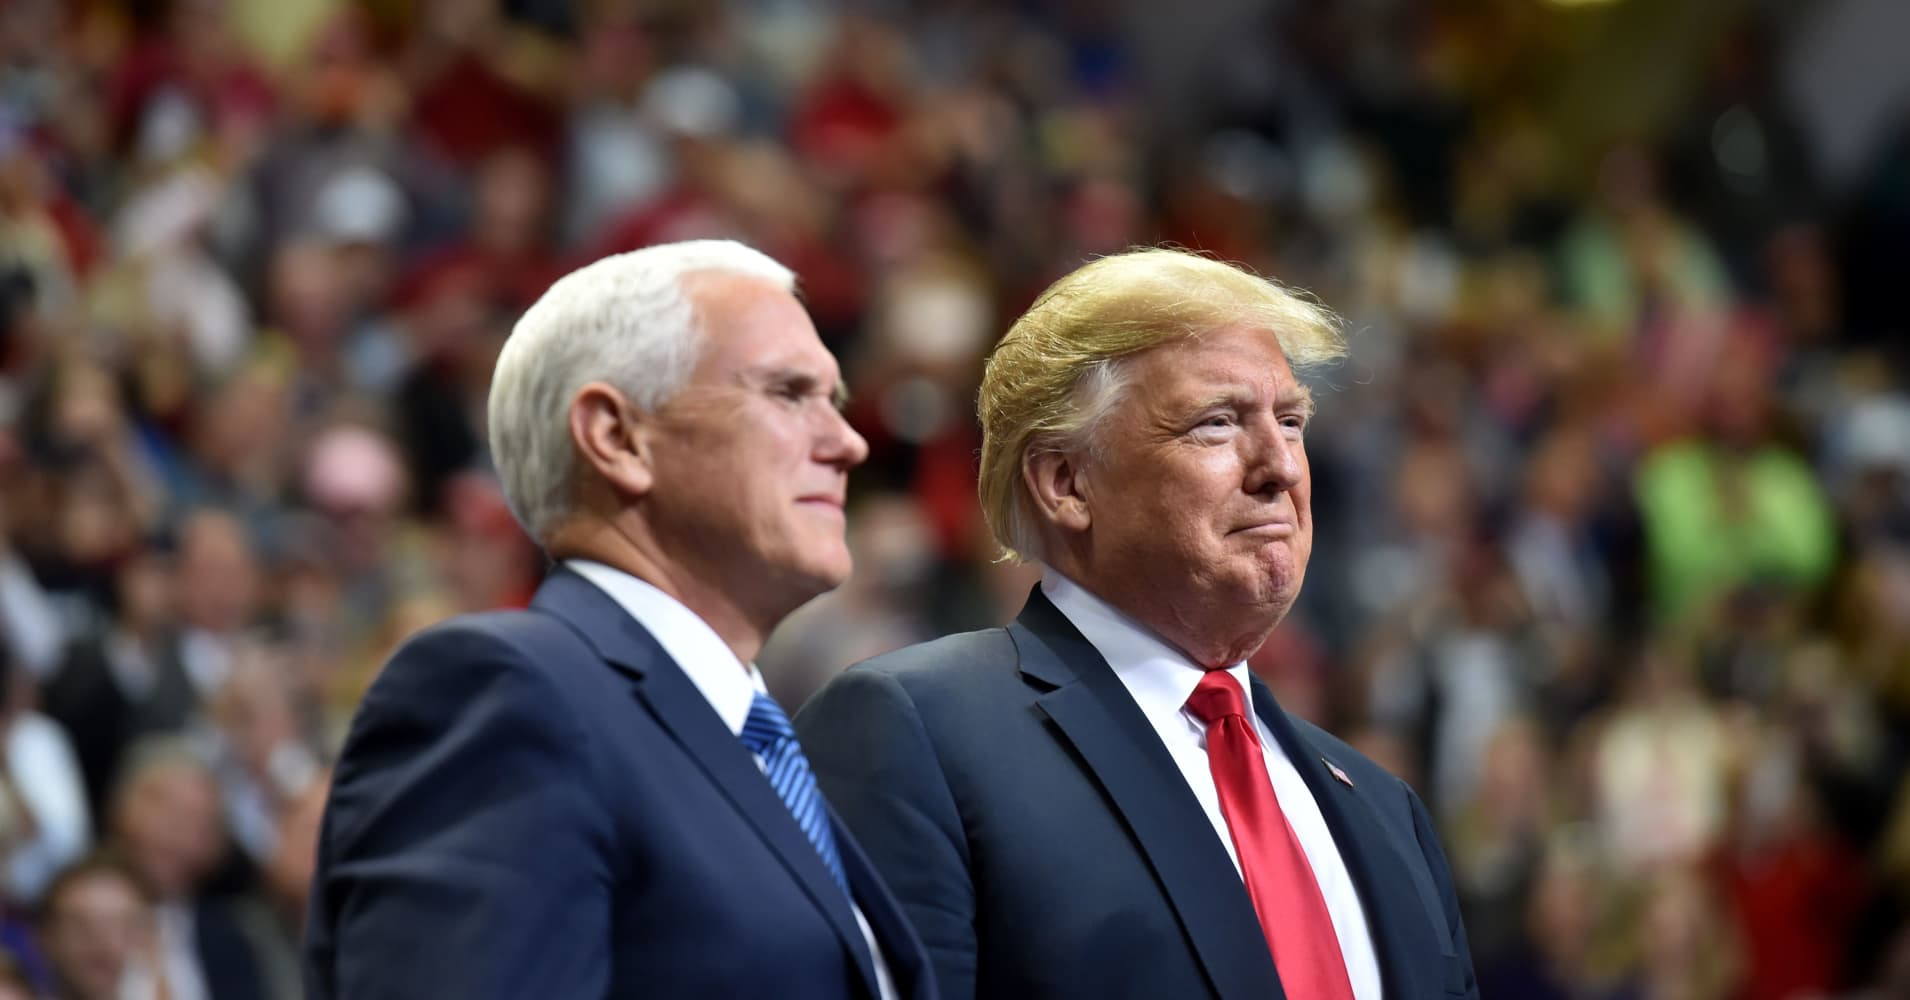 President Trump is telling allies he wants Vice President Mike Pence to stay on the ticket in 2020